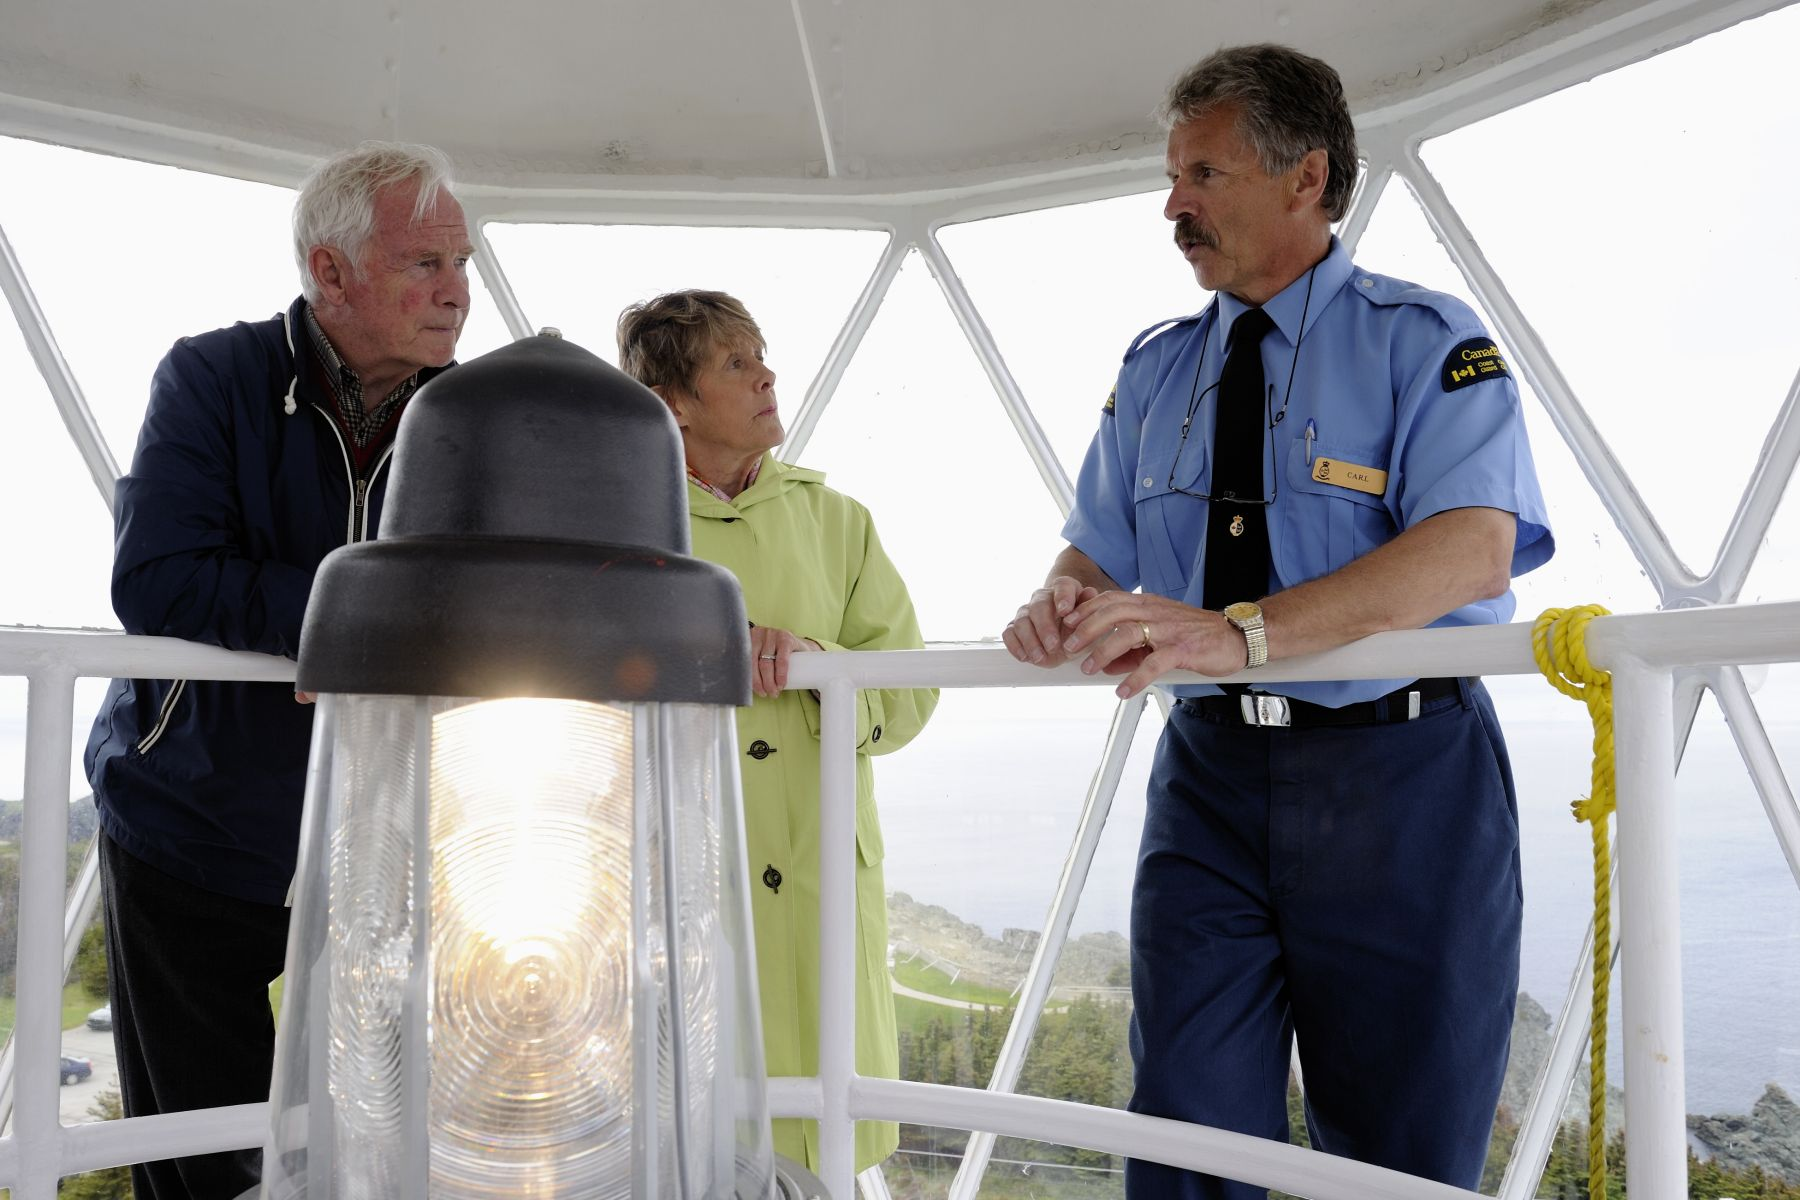 Their Excellencies then headed to the Long Point Lighthouse, which was built more than 300 feet above the Atlantic Ocean sea level and is operated by the Canadian Coast Guard.